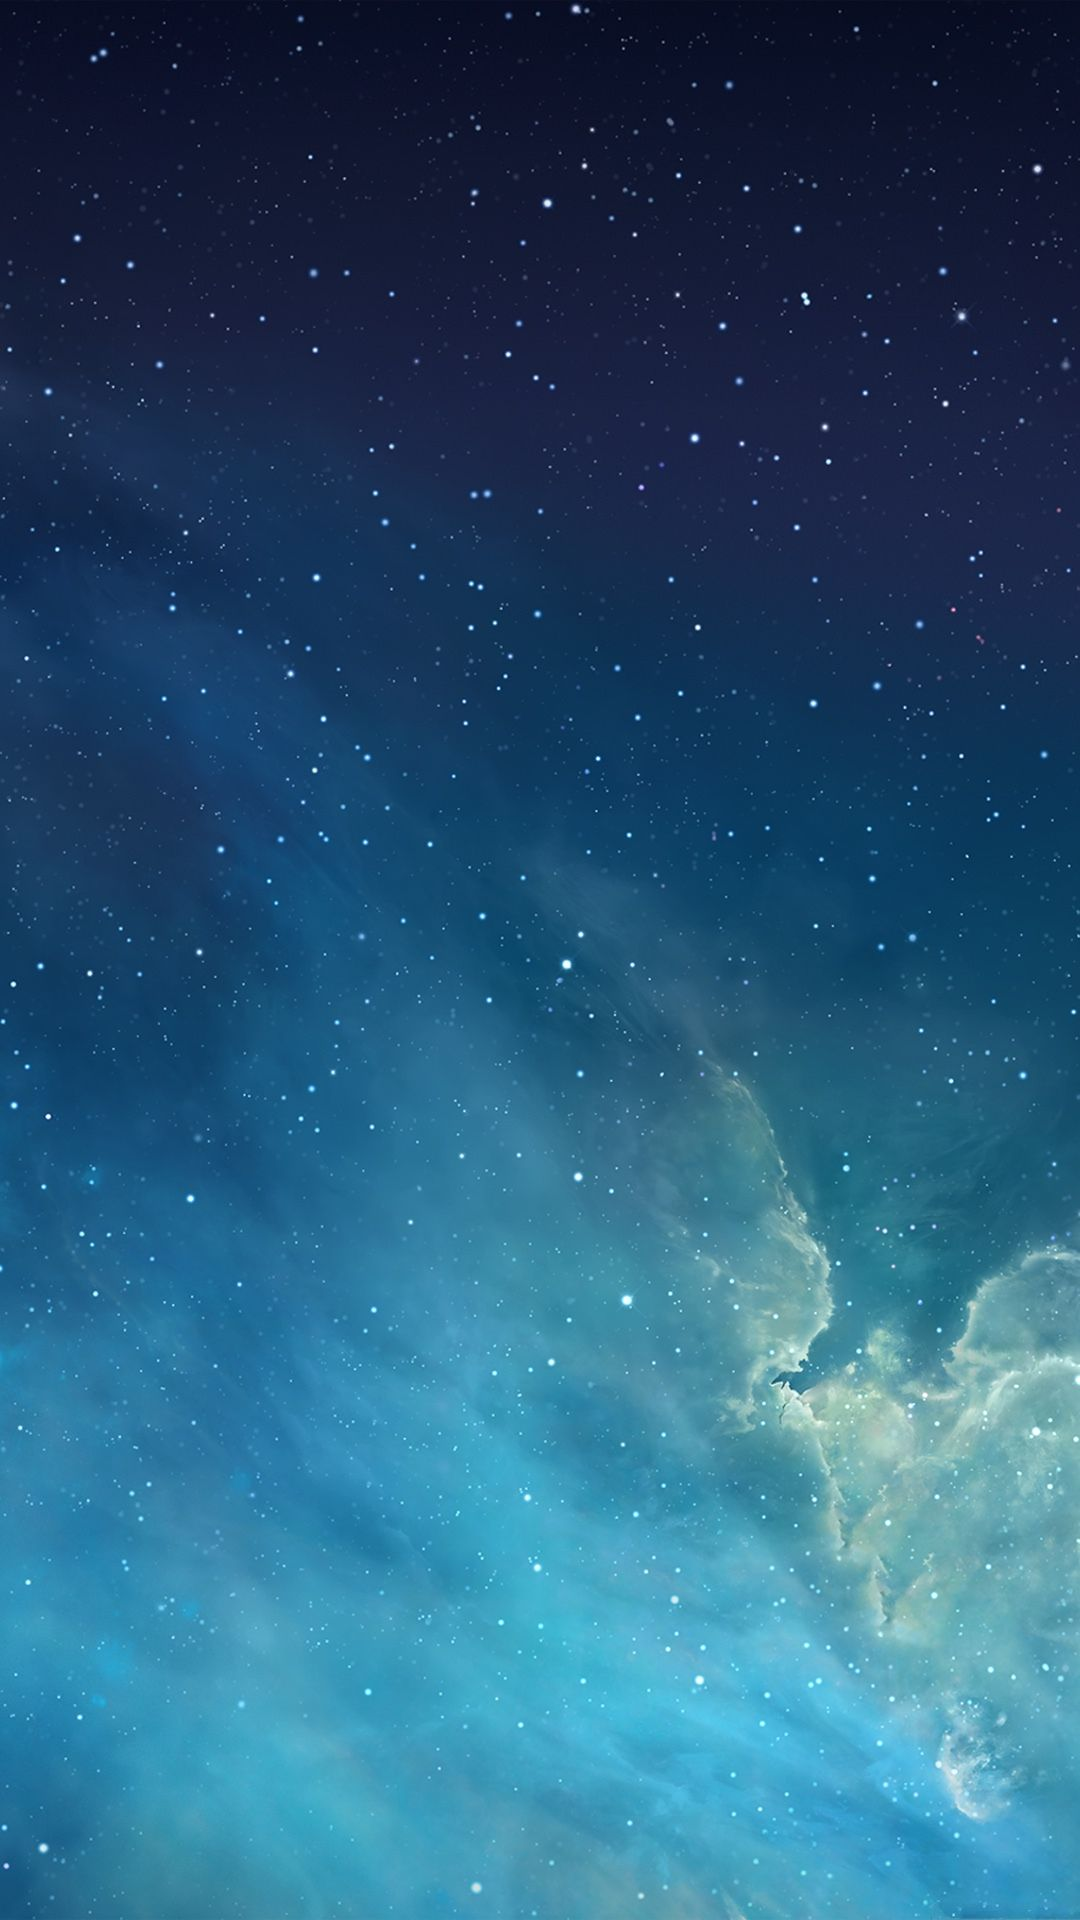 Apple Ios7 Default Lockscreen Iphone 6 Plus Hd Wallpaper Os